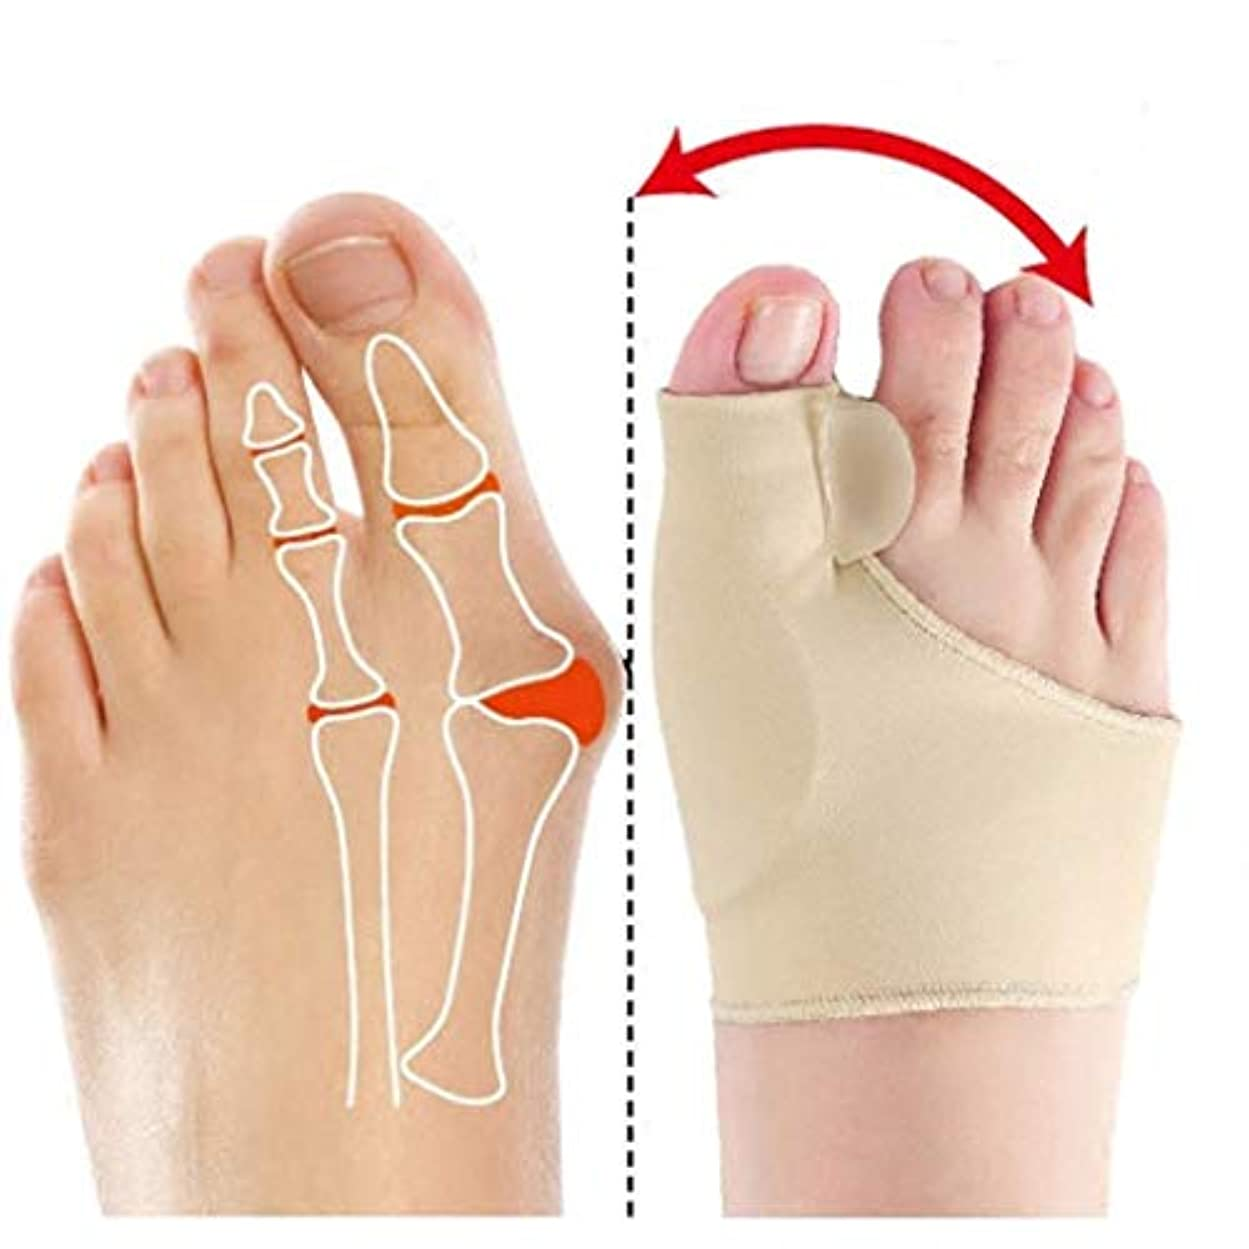 イヤホンカナダ麻痺Dyong Thumb Toe Corrector Big Toe Straightener Toe Pain Relief Sleeve、Bunion Splint Support Sleeve with Built-in Silicone Gel Pad for Hallux Valgus Pain Relief